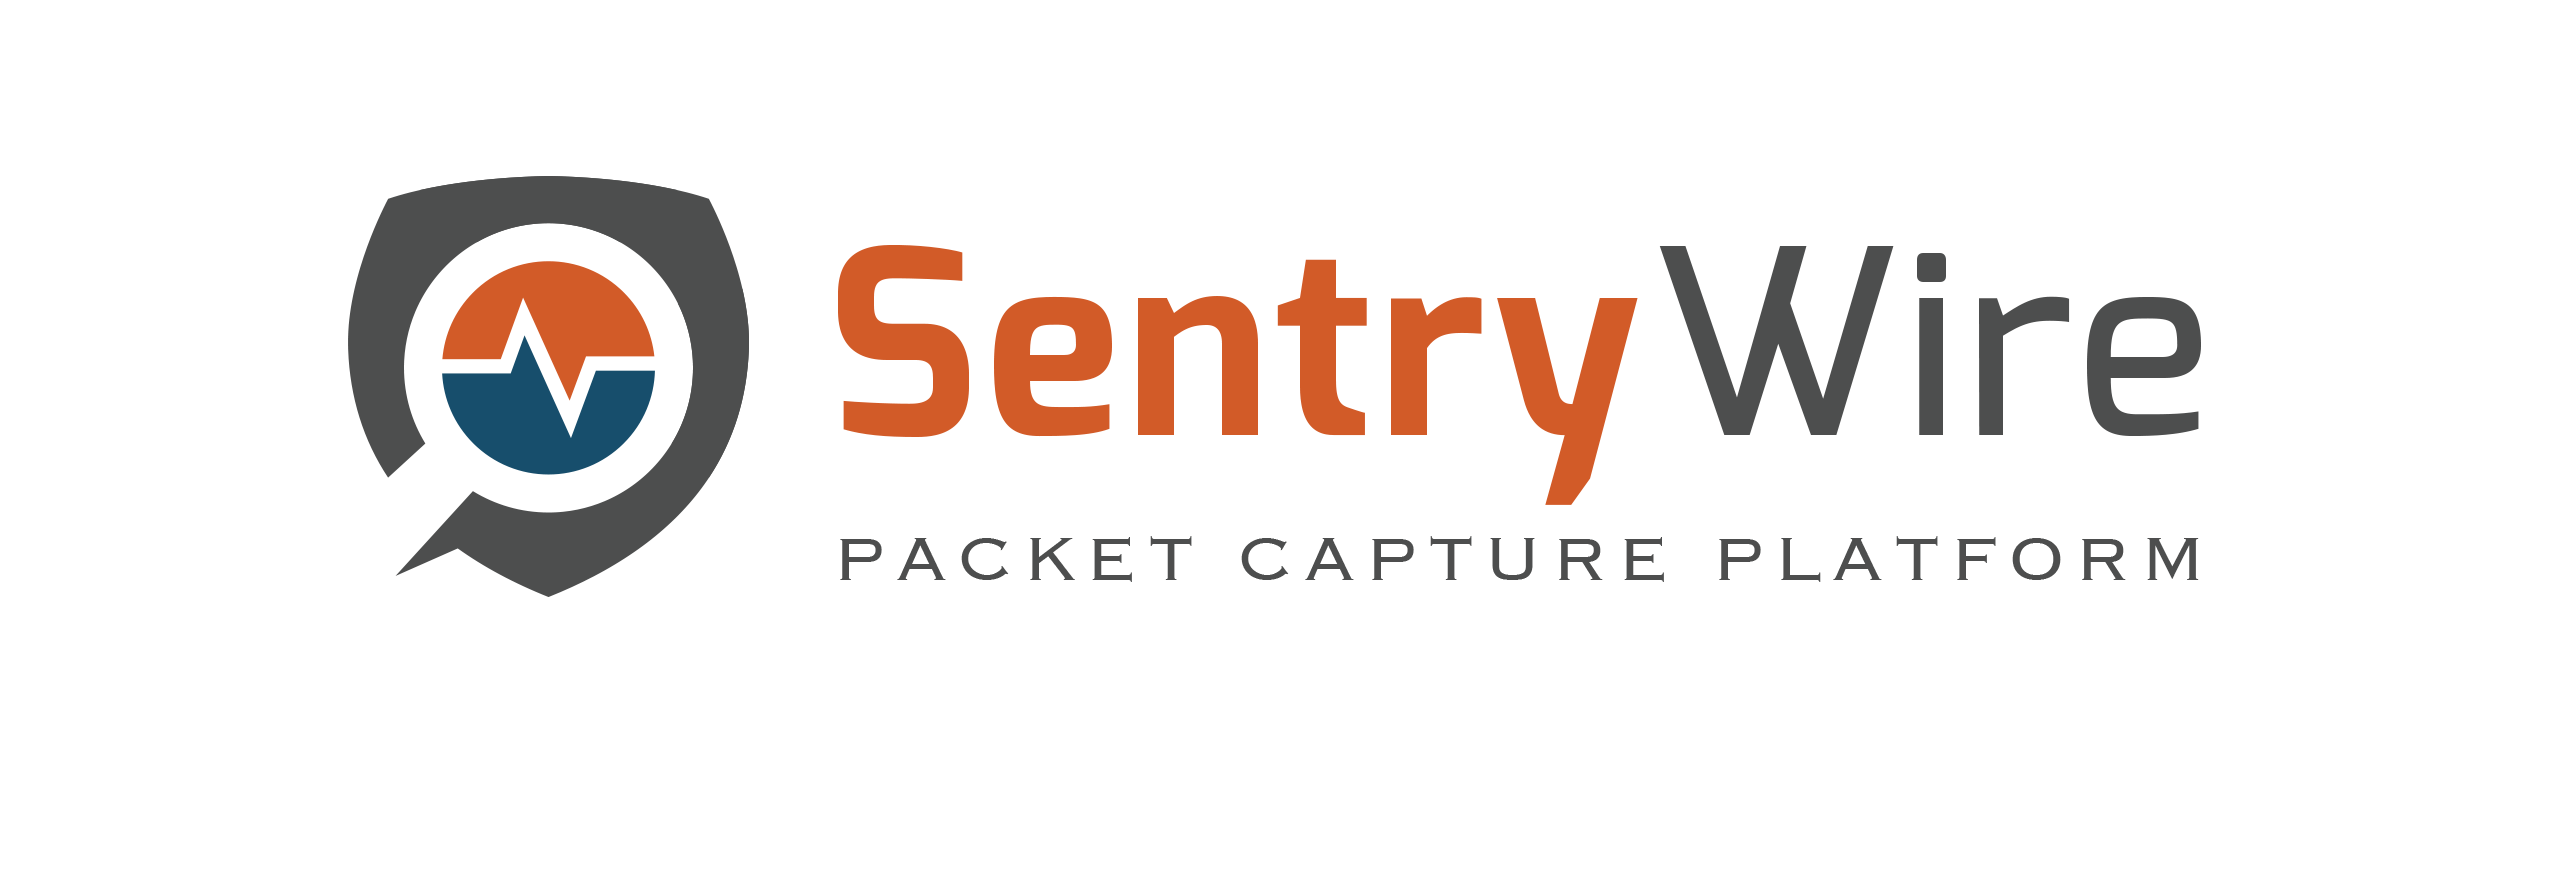 SentryWire